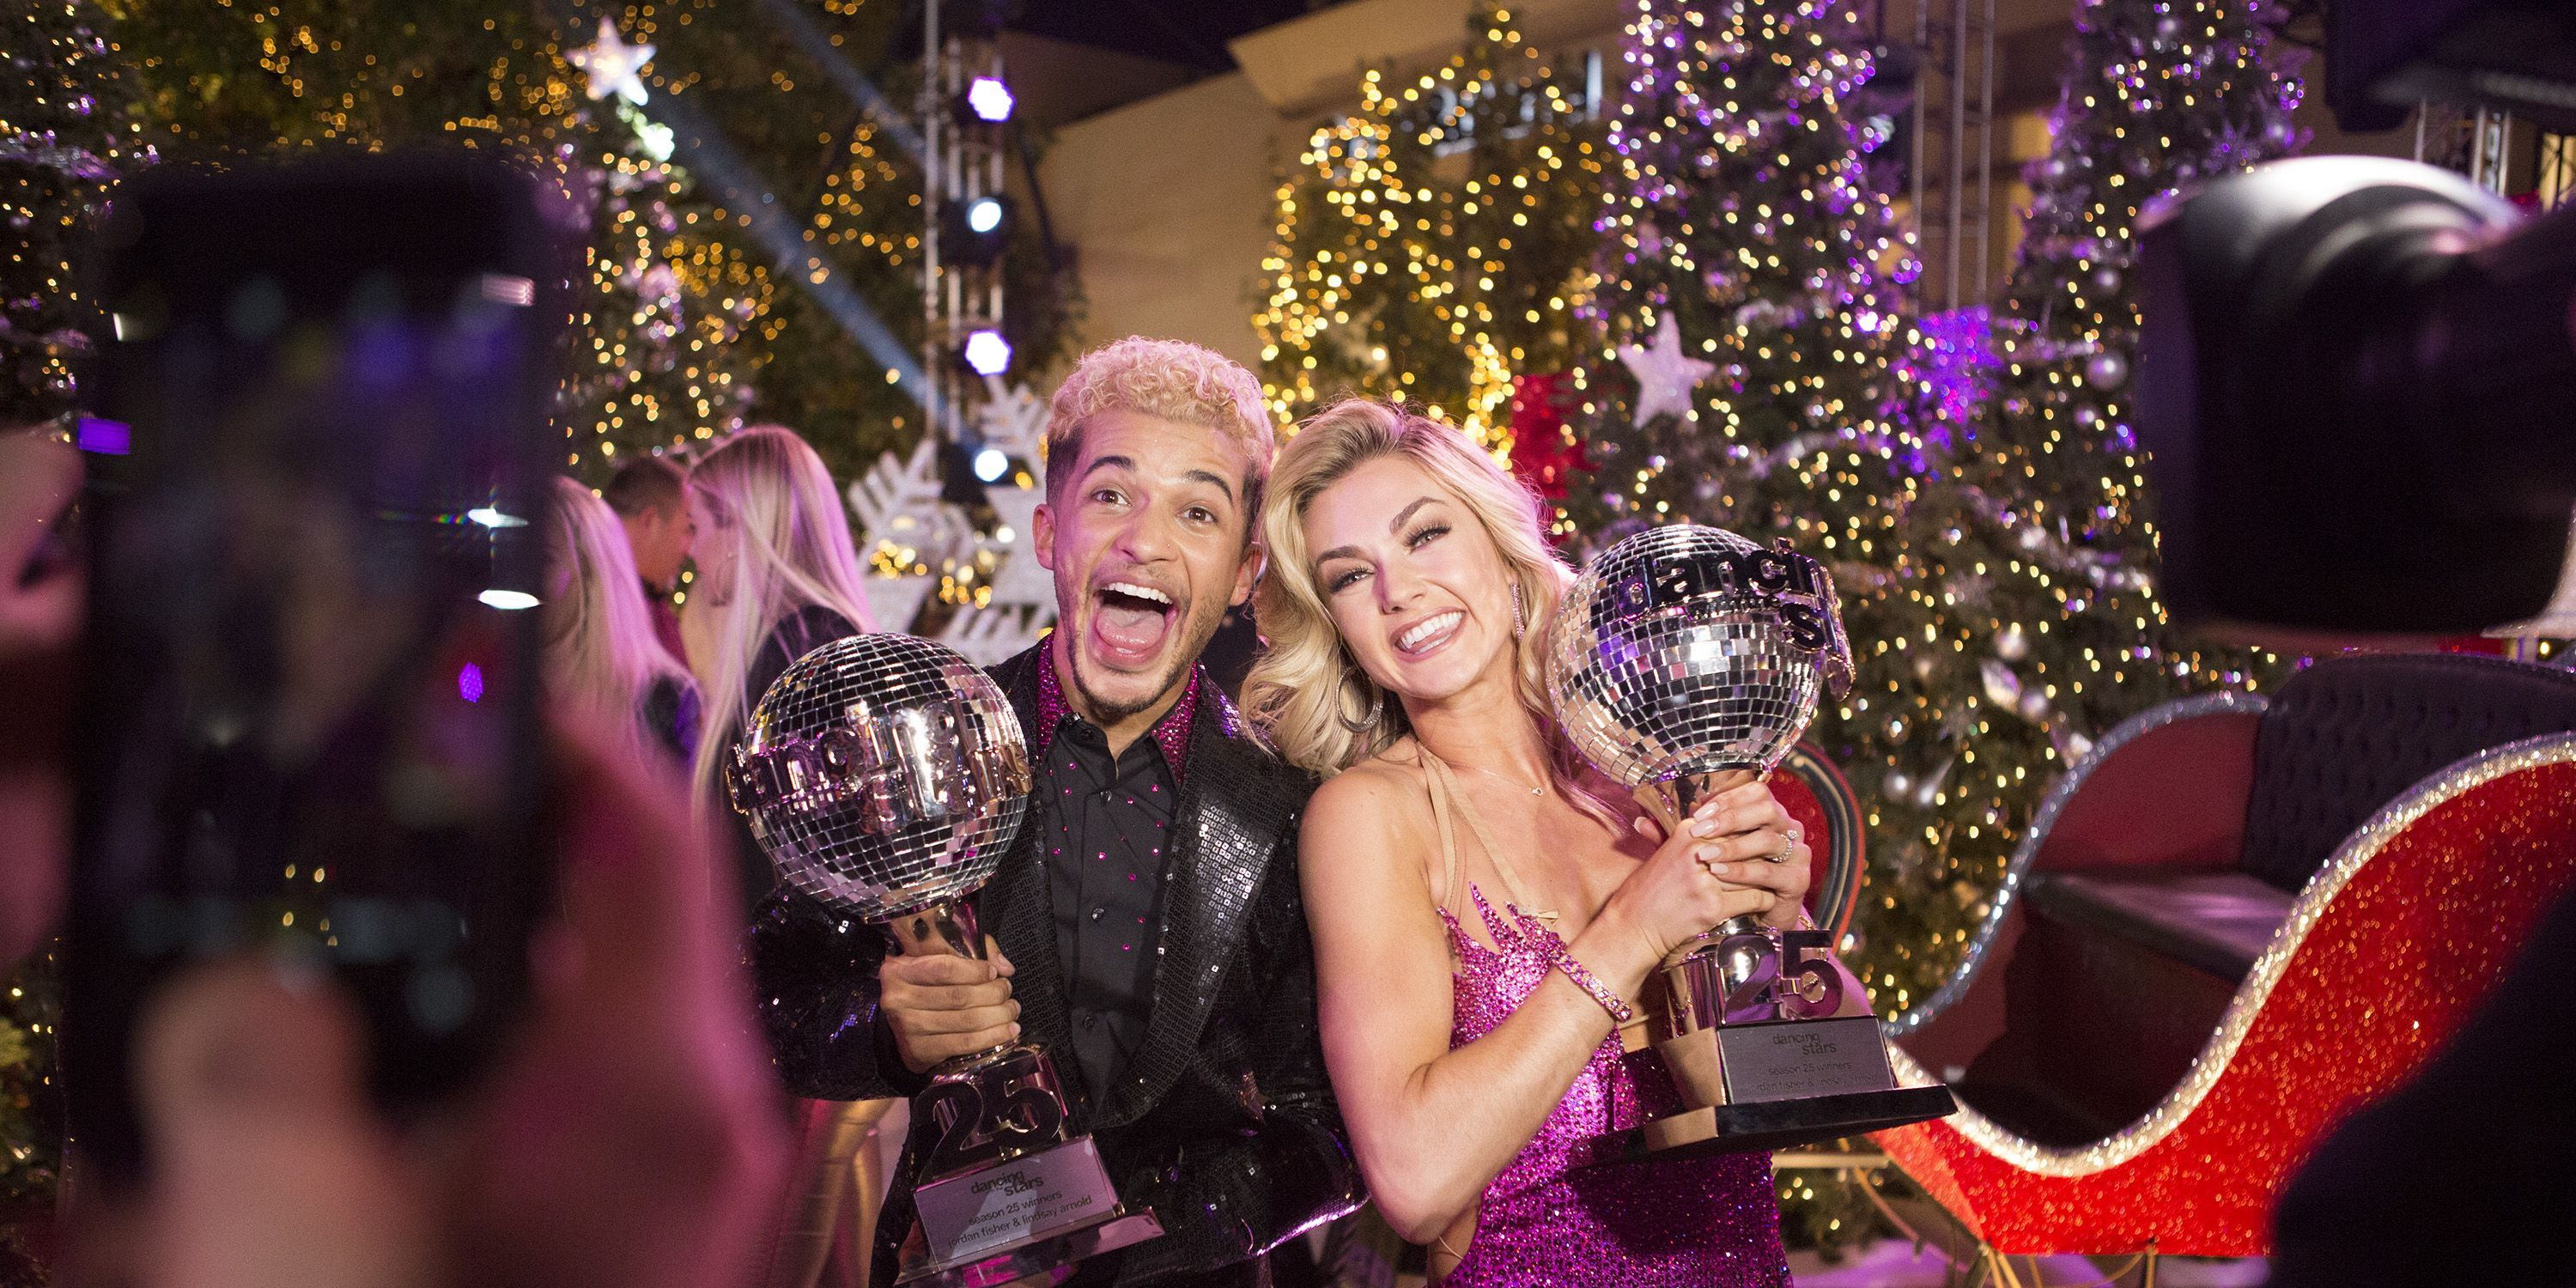 dancing with the stars secrets